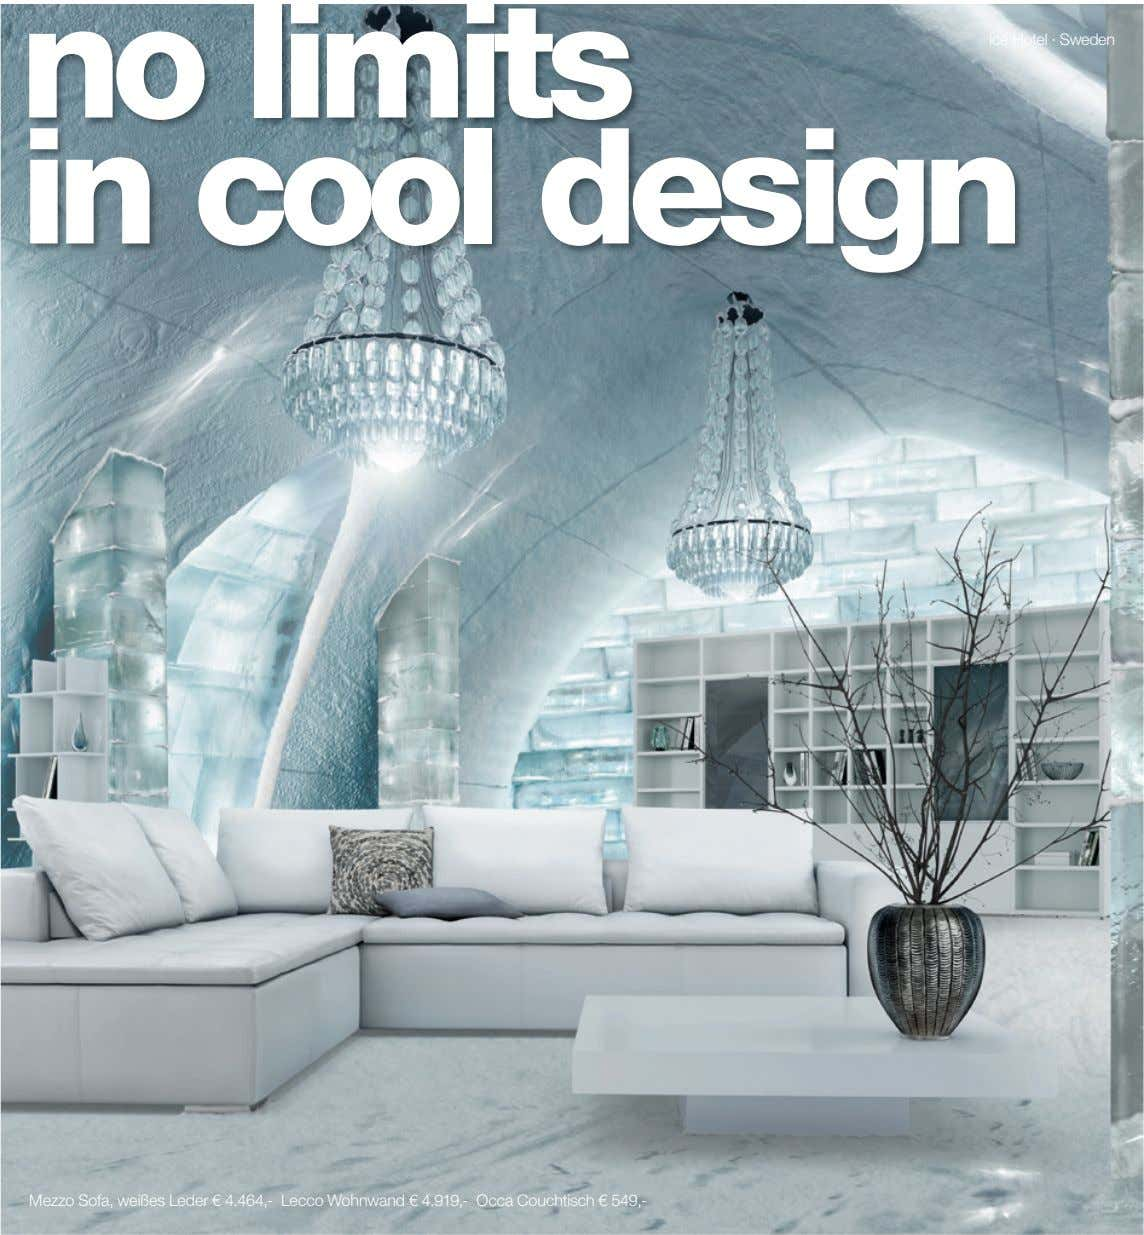 no limits in cool design Ice Hotel · Sweden Mezzo Sofa, weißes Leder € 4.464,-